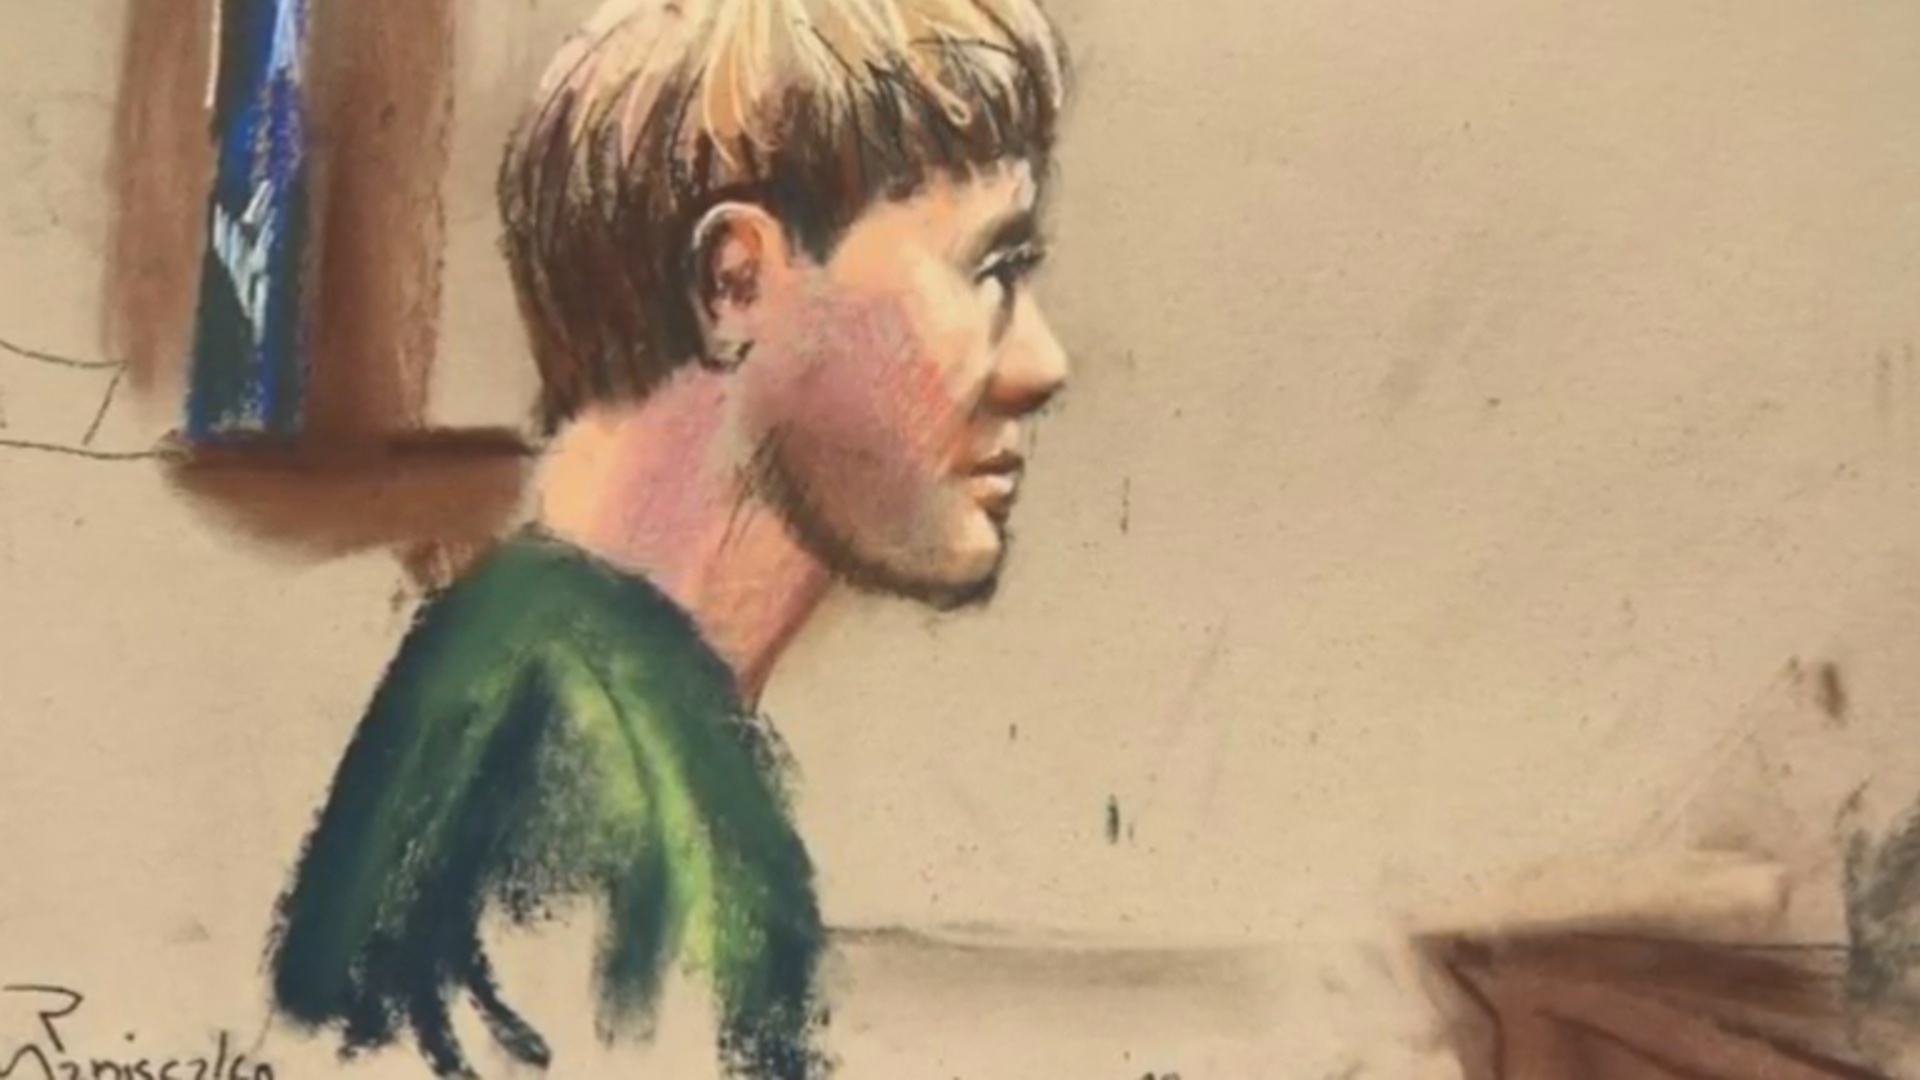 Lawyer decries emotional testimony at SC church gunman's trial